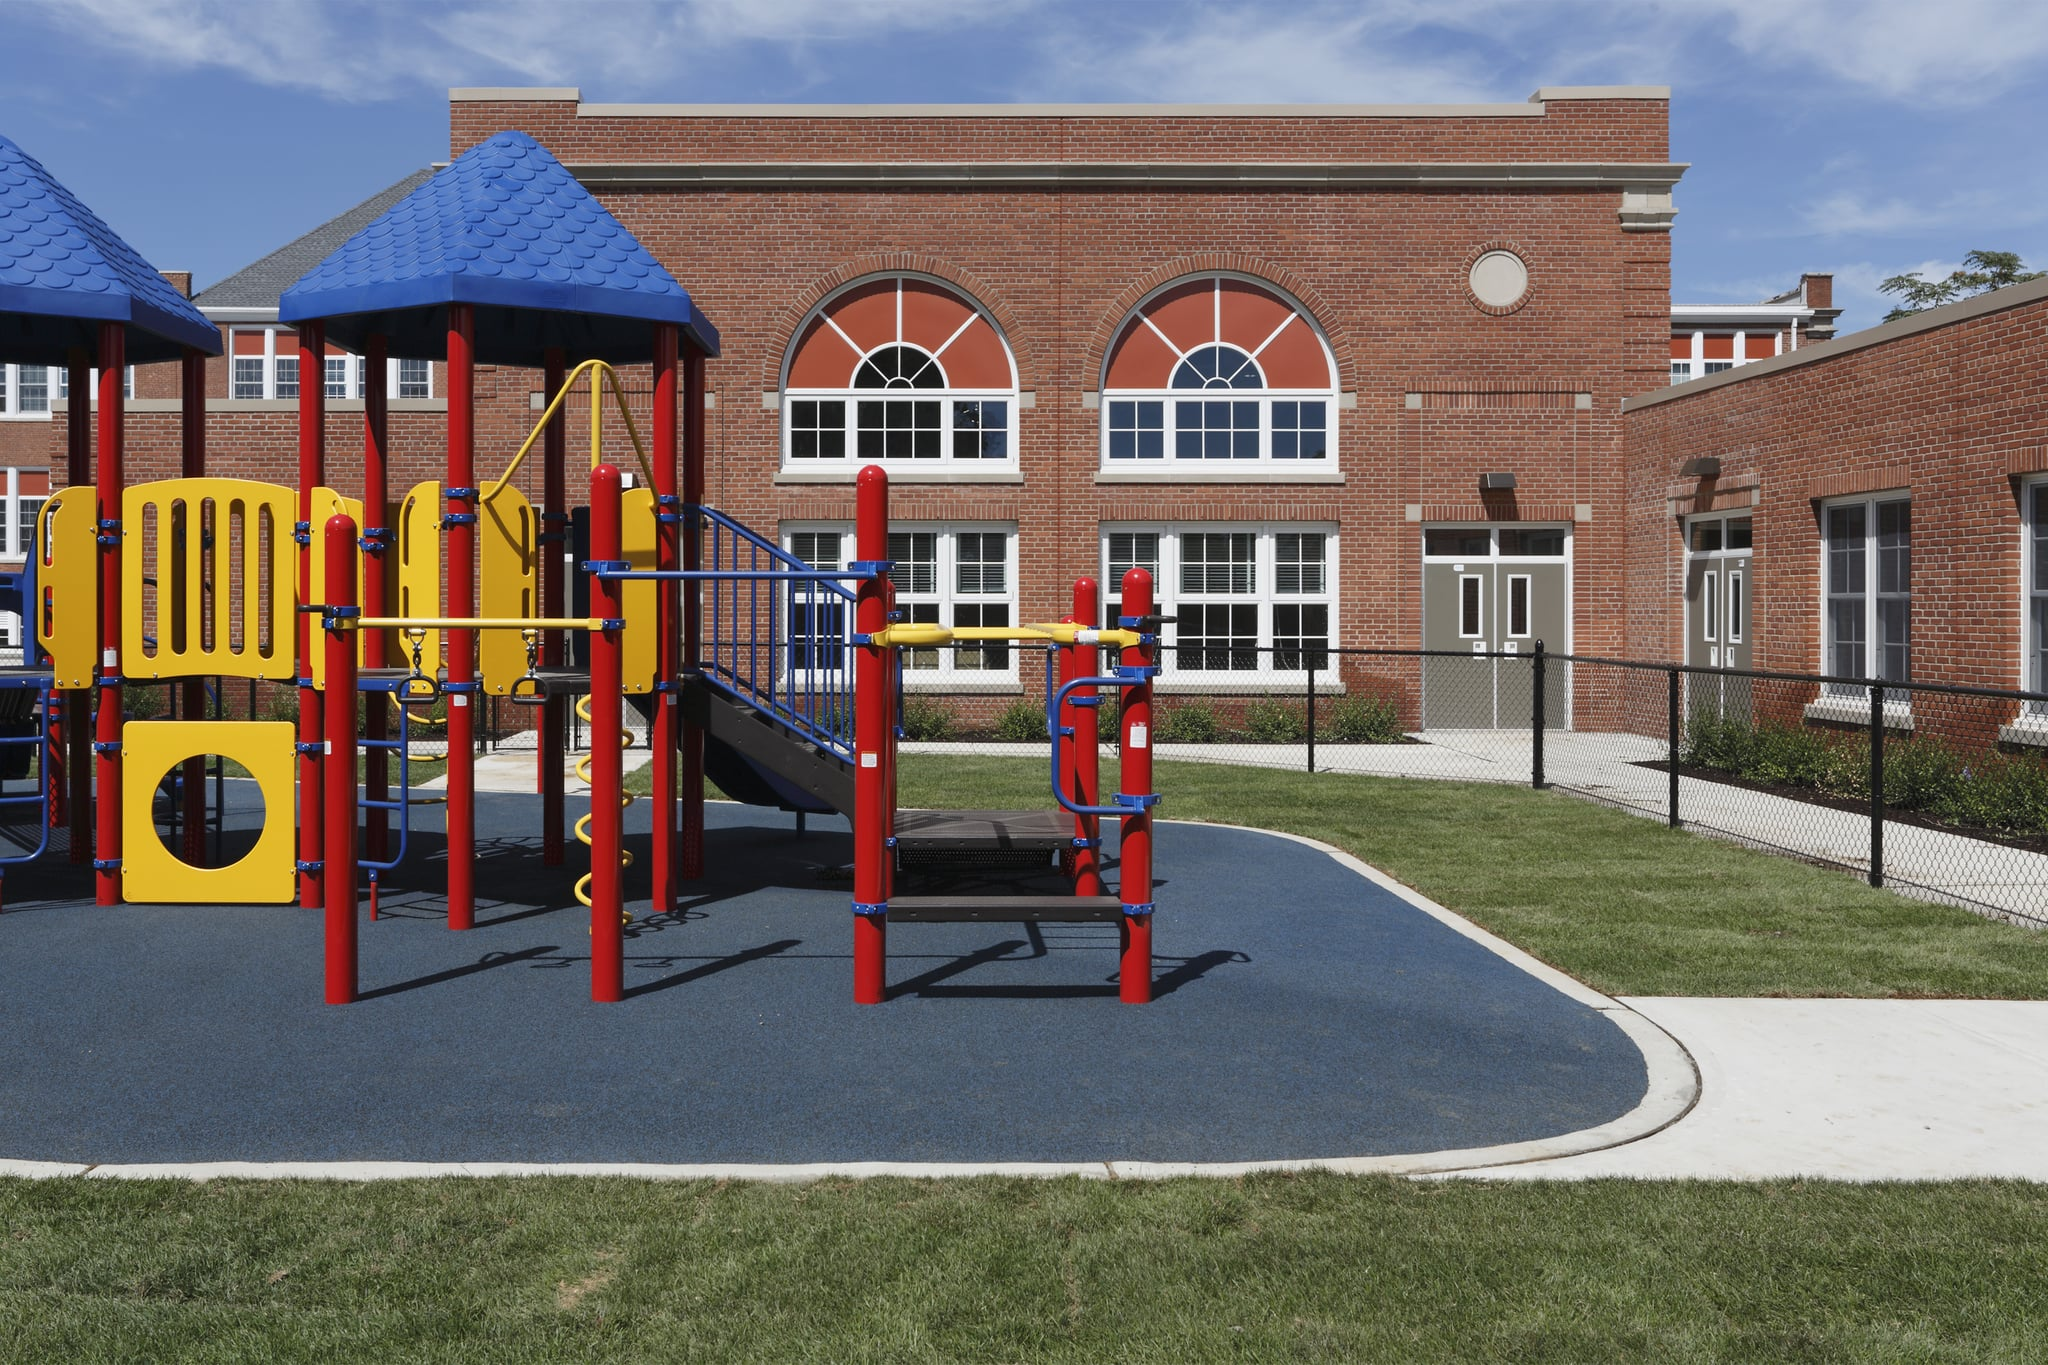 gated elementary school playground with colourful jungle gym equipment, slides, monkey bars, mazes, on padded play surface, with large brick school building complex